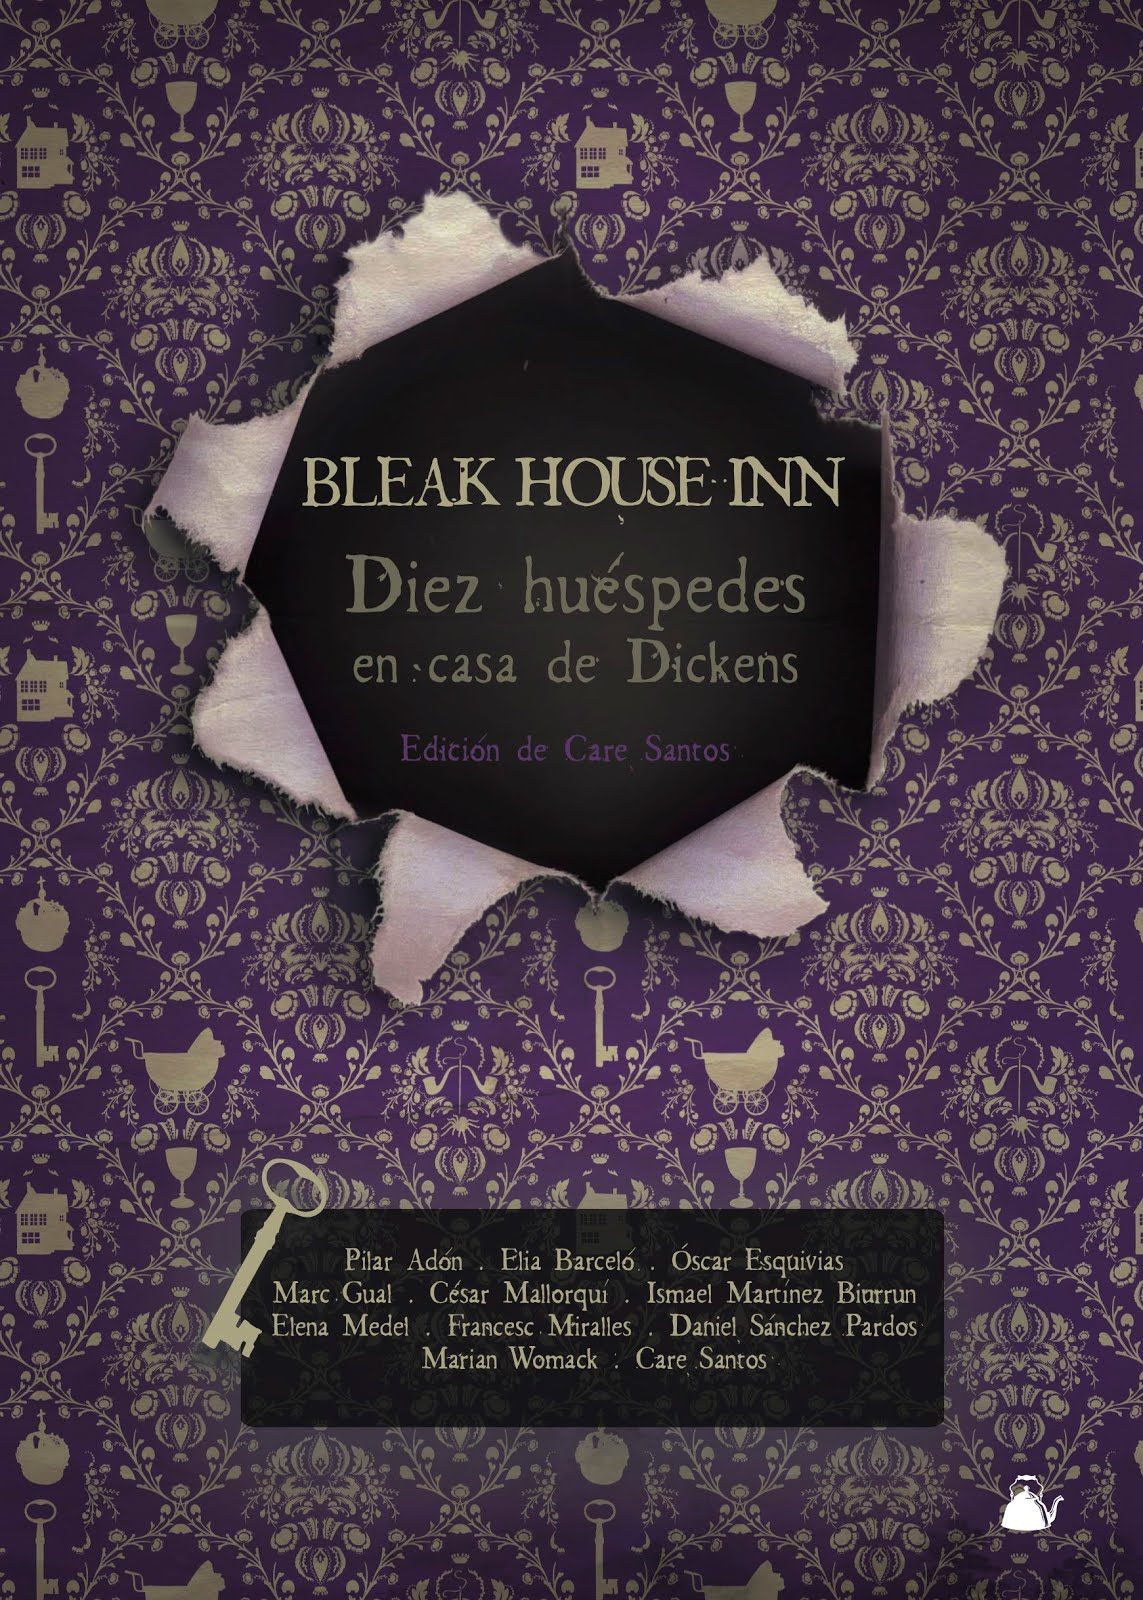 Bleak House Inn